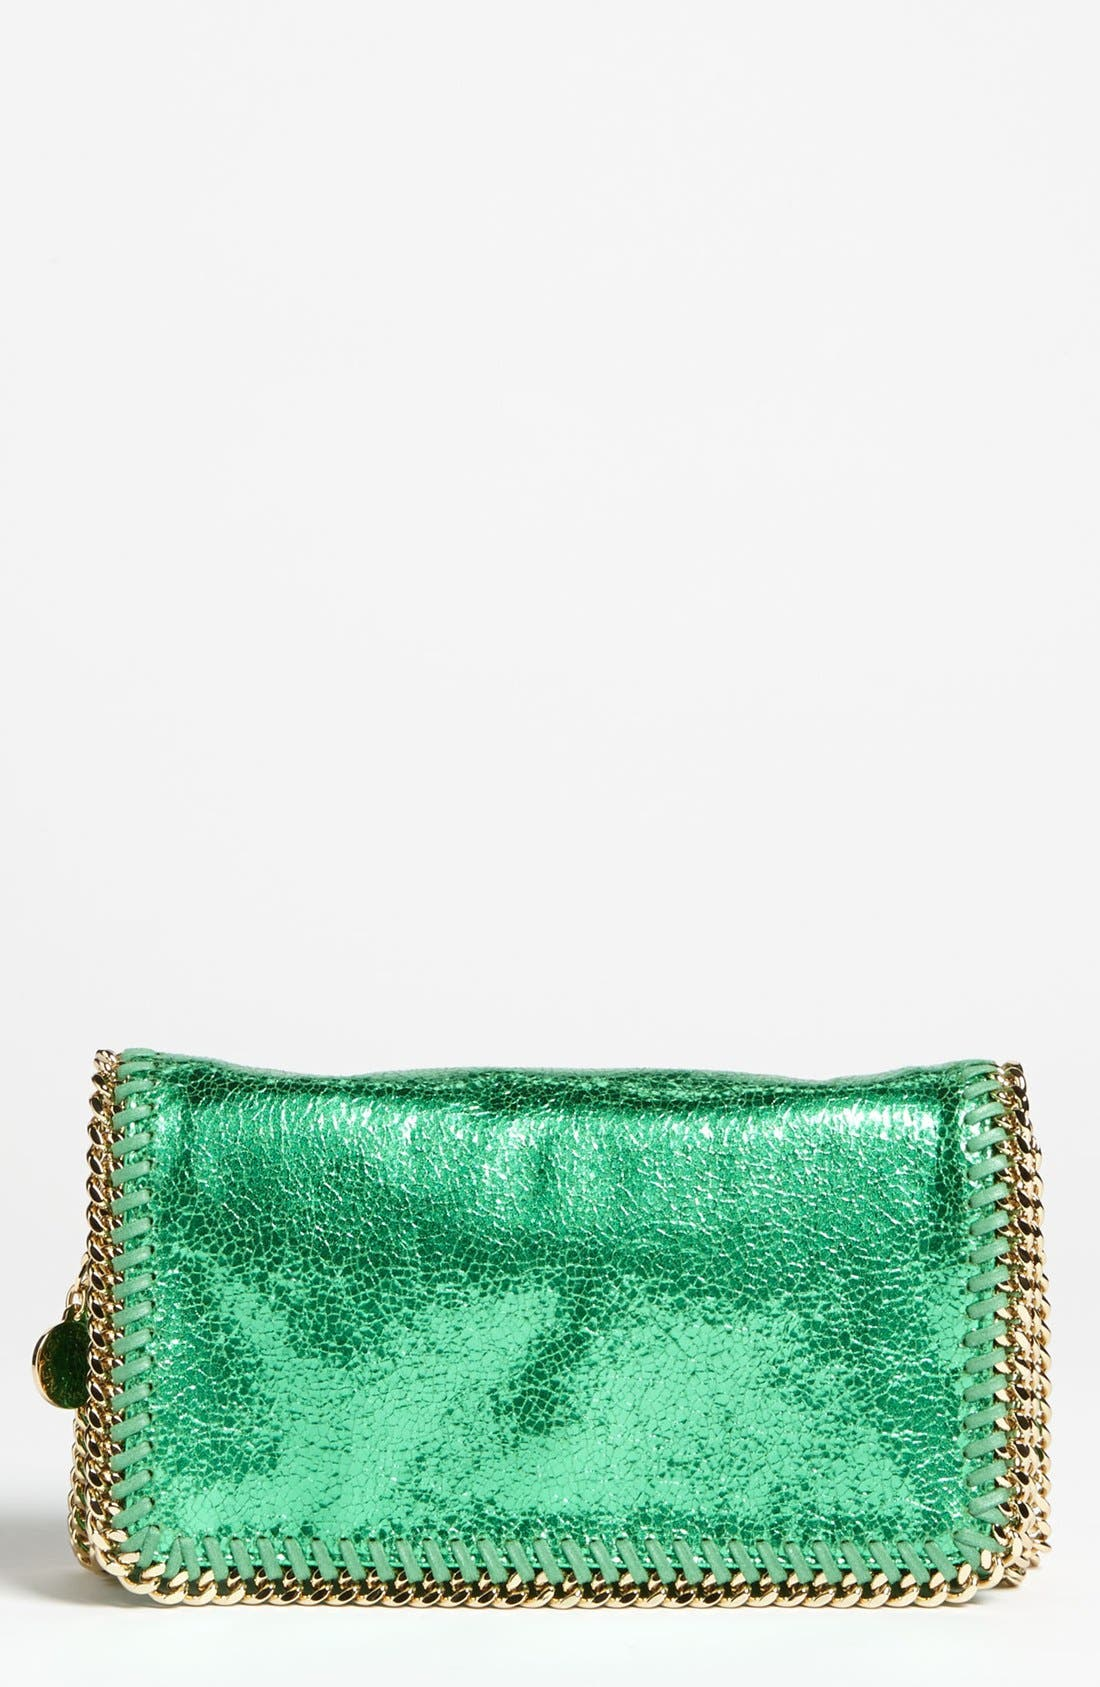 Main Image - Stella McCartney 'Falabella - Cracle' Crossbody Bag